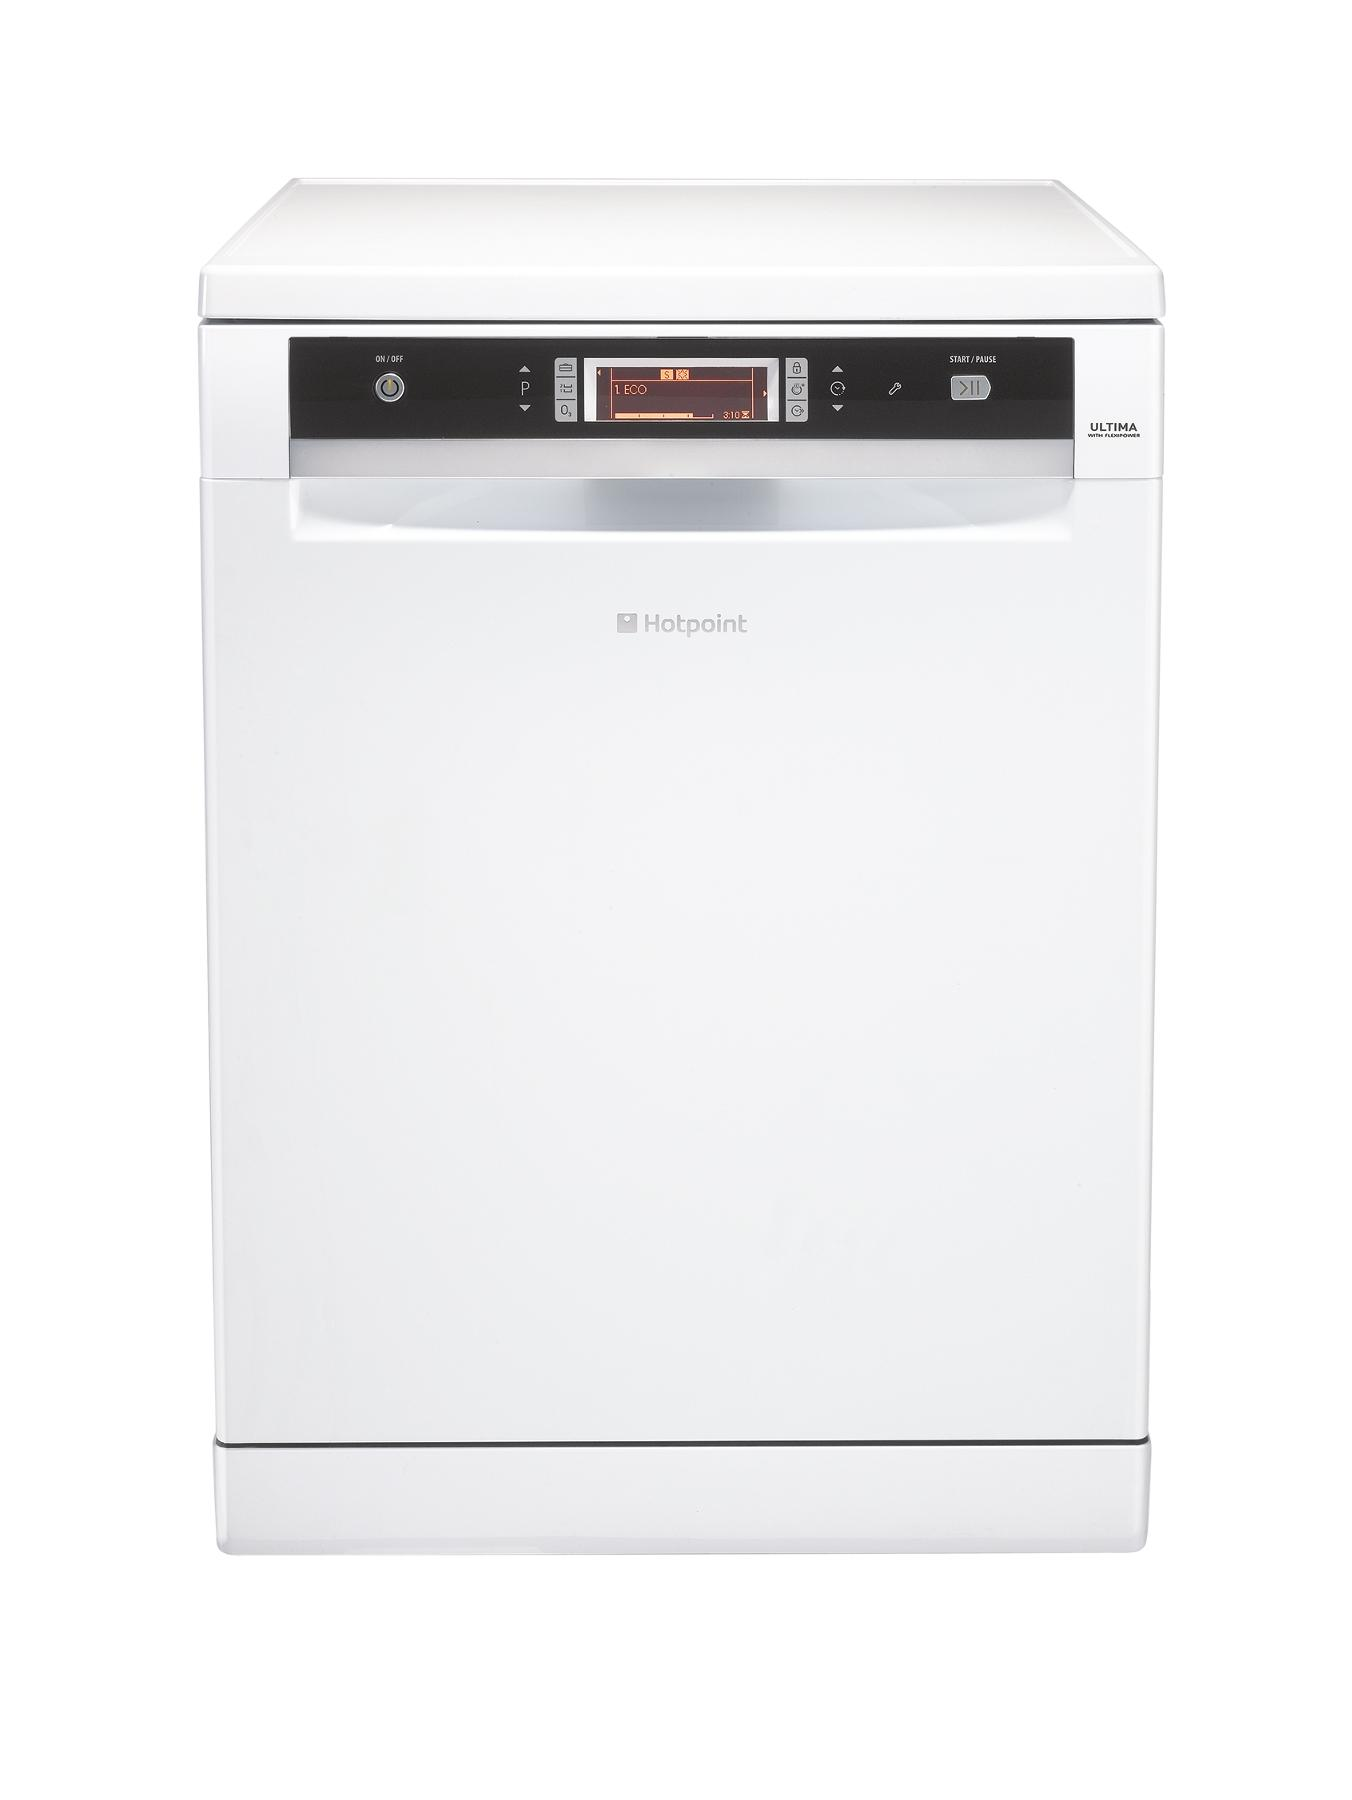 FDUD51110P Ultima Dishwasher - Polar